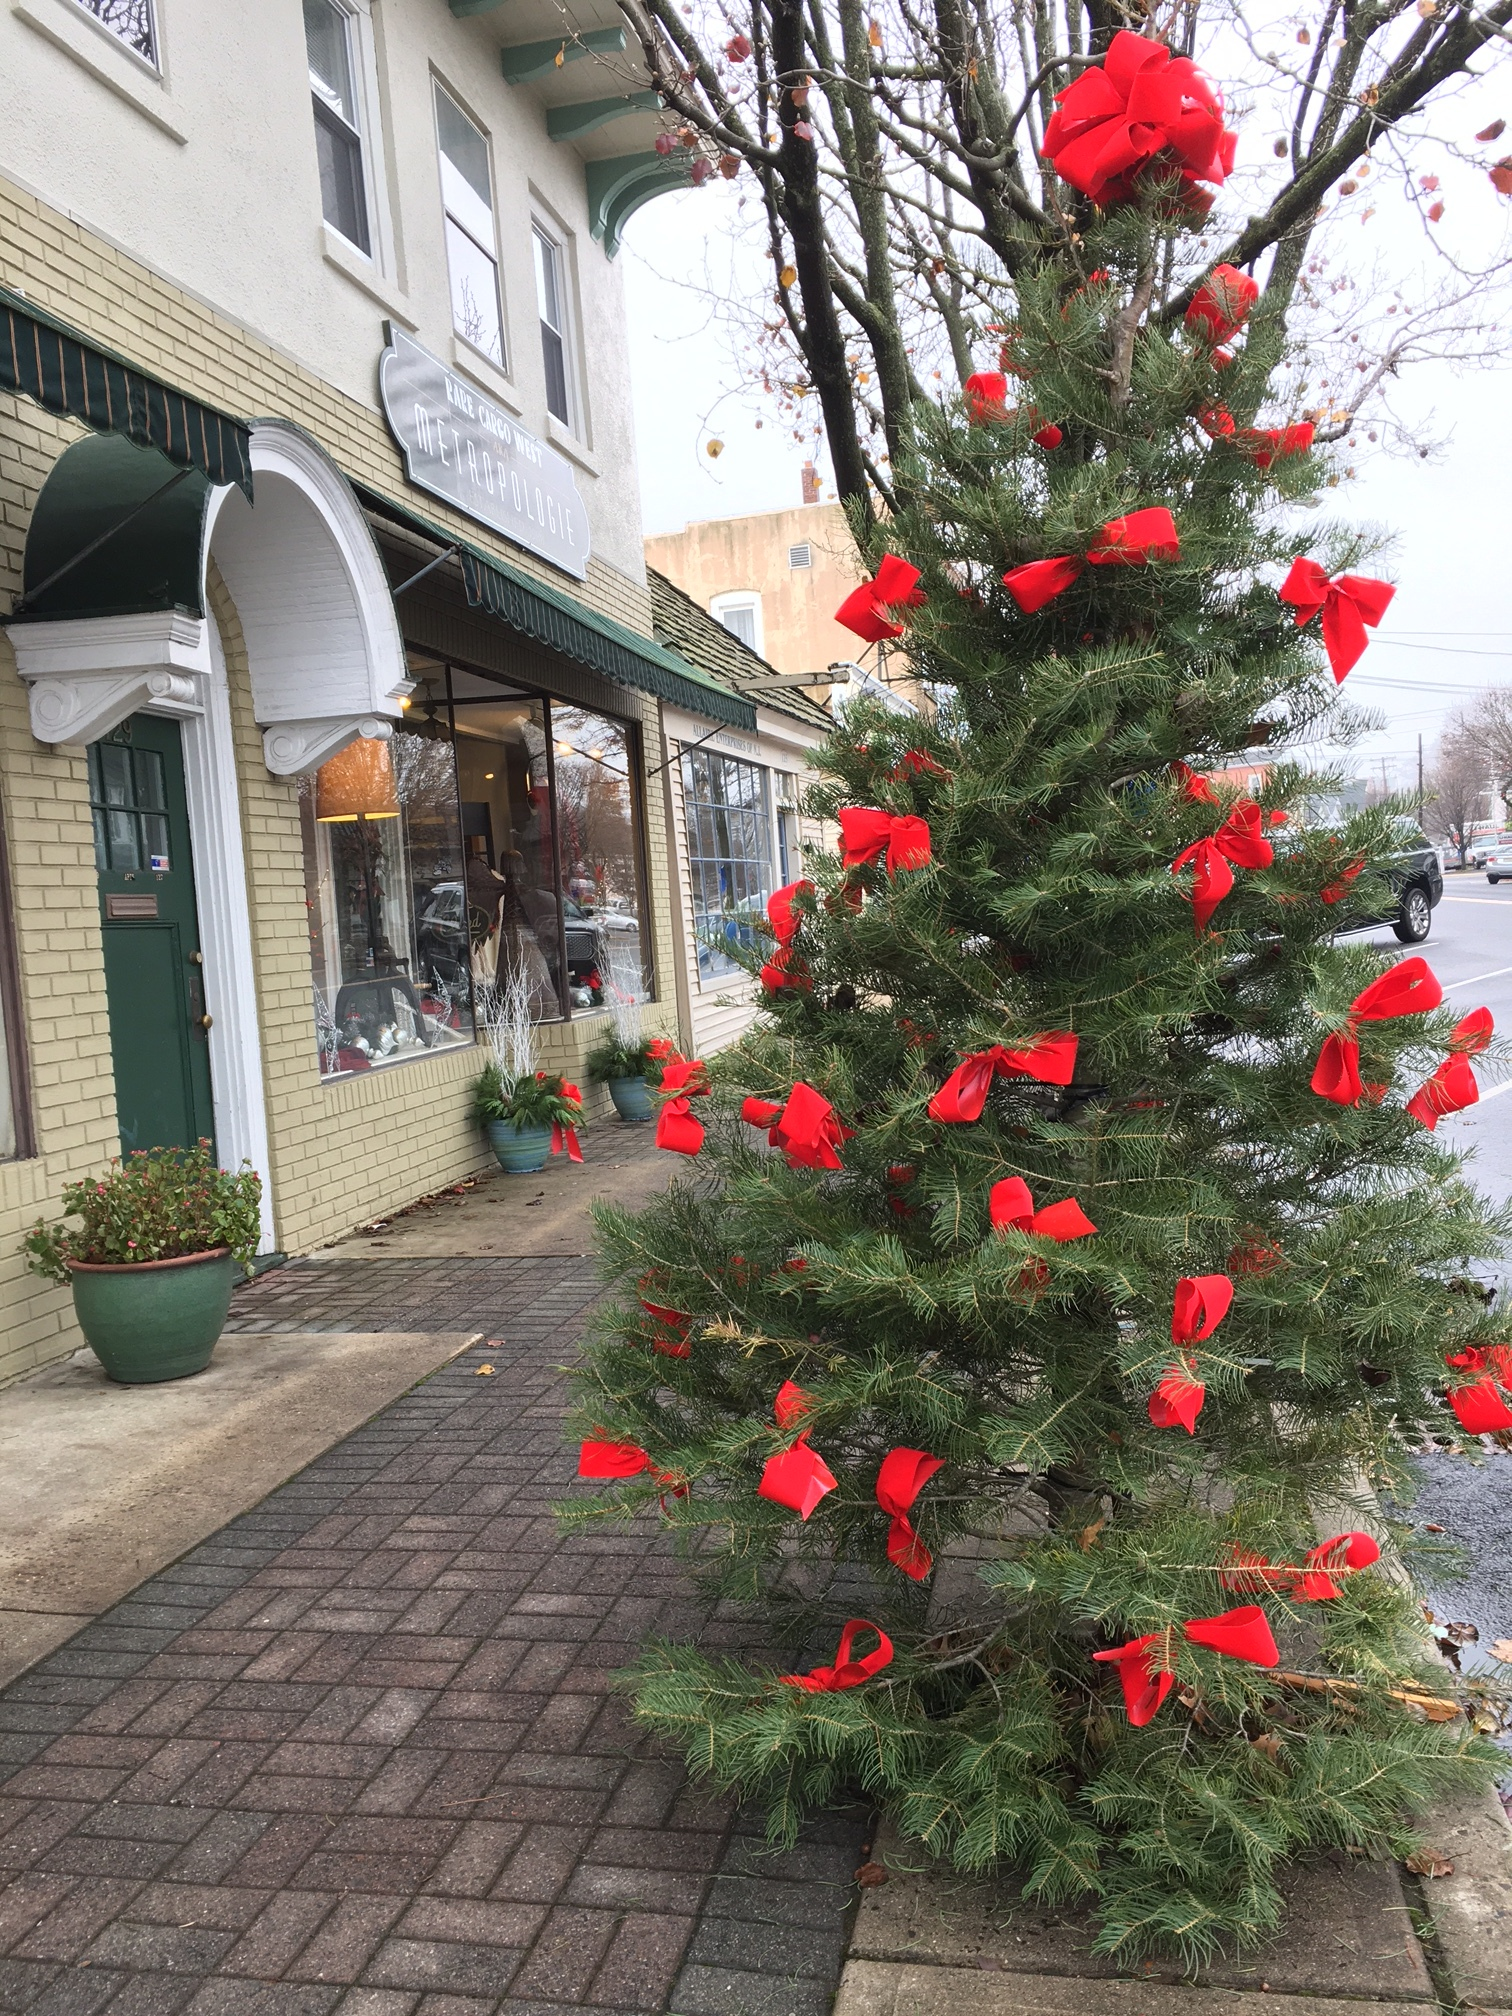 And of course there are xmas trees everywhere! Manasquan, NJ